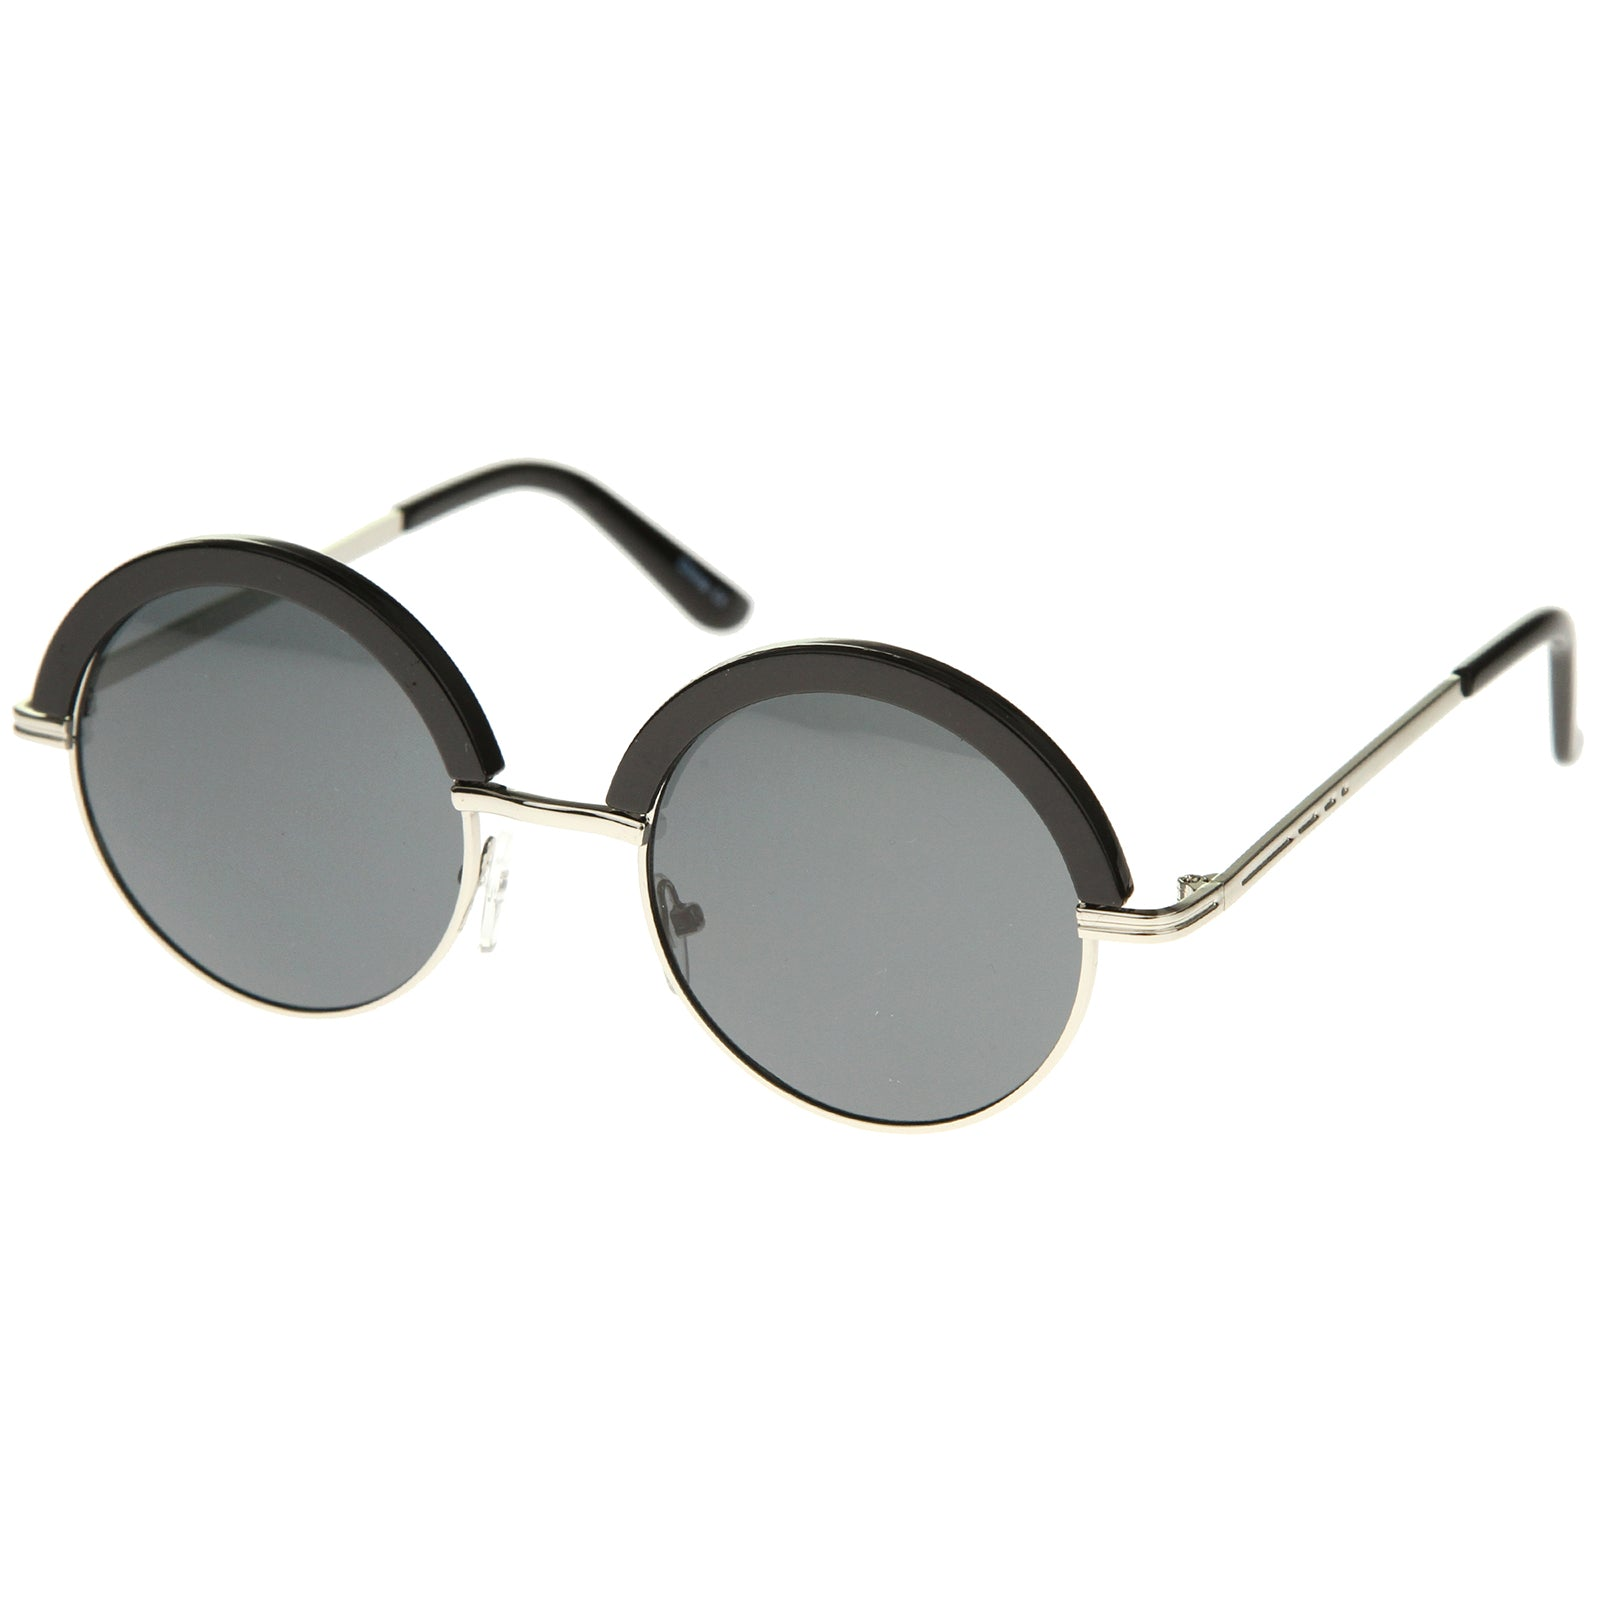 Womens Metal Round Sunglasses With UV400 Protected Composite Lens - sunglass.la - 10